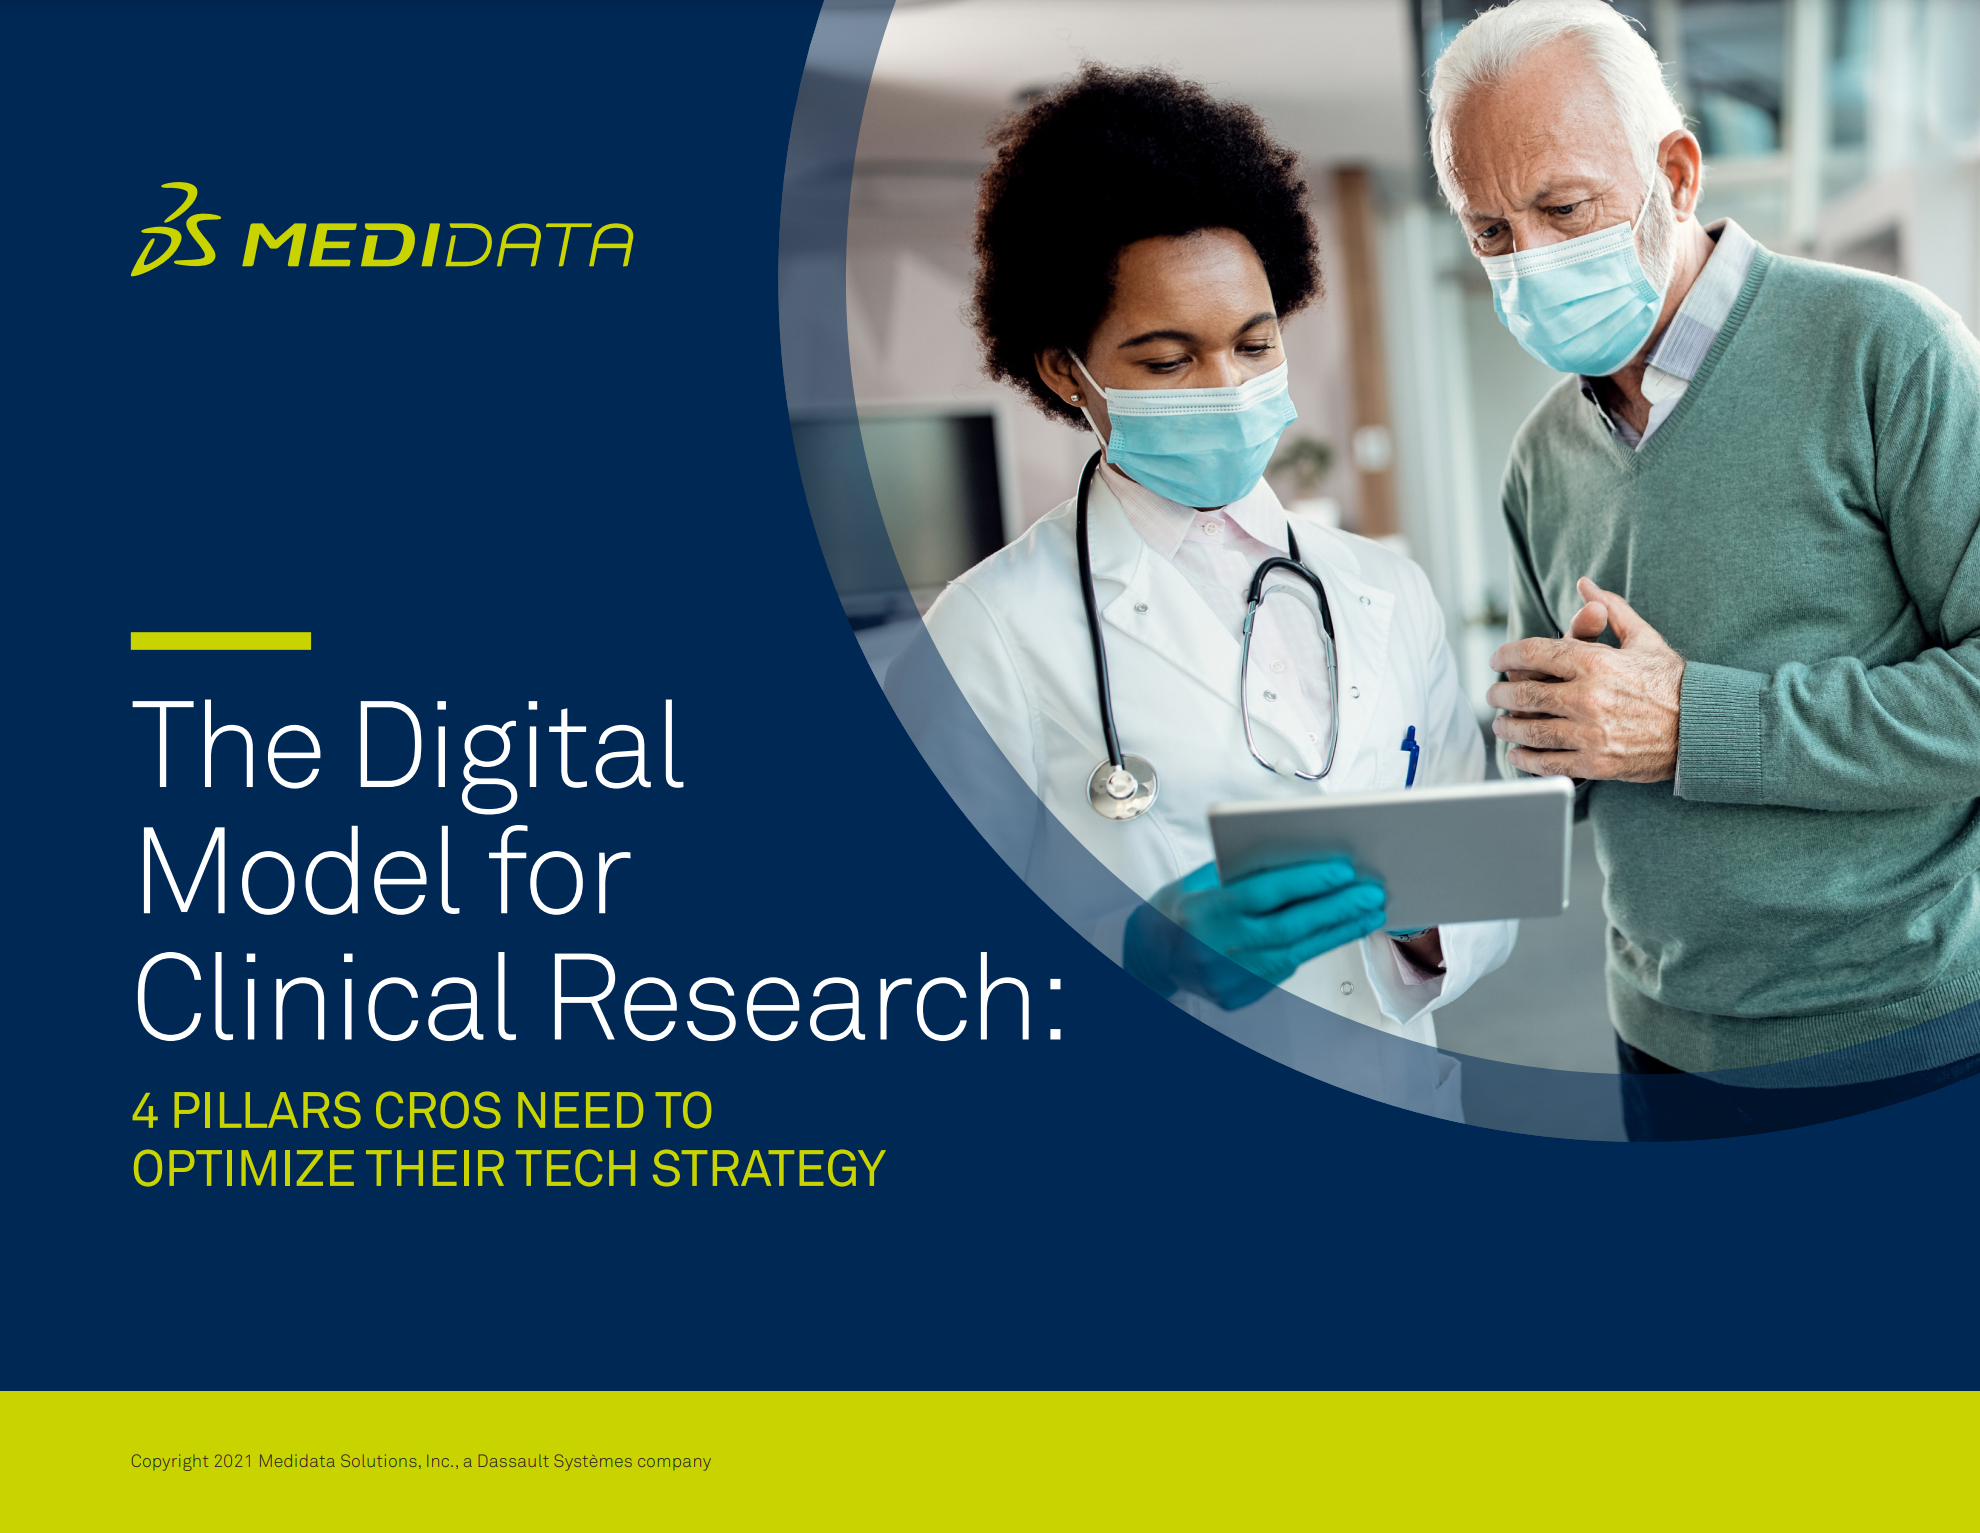 The Digital Model for Clinical Research: 4 Pillars CROs Need to Optimize Their Tech Strategy